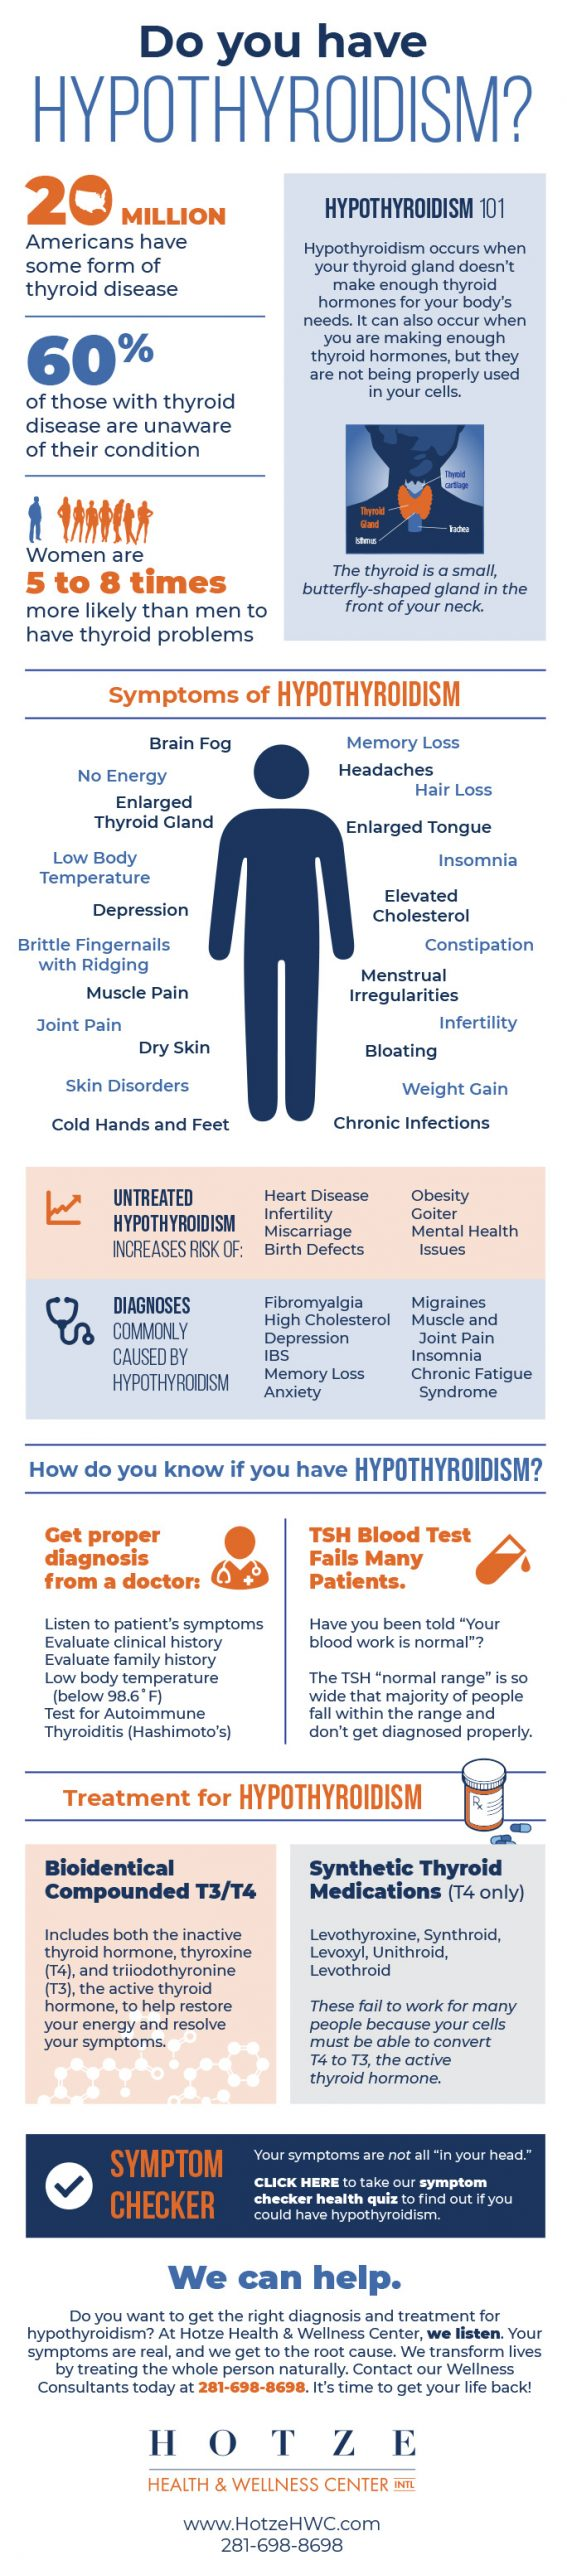 infographic on hypothyroidism